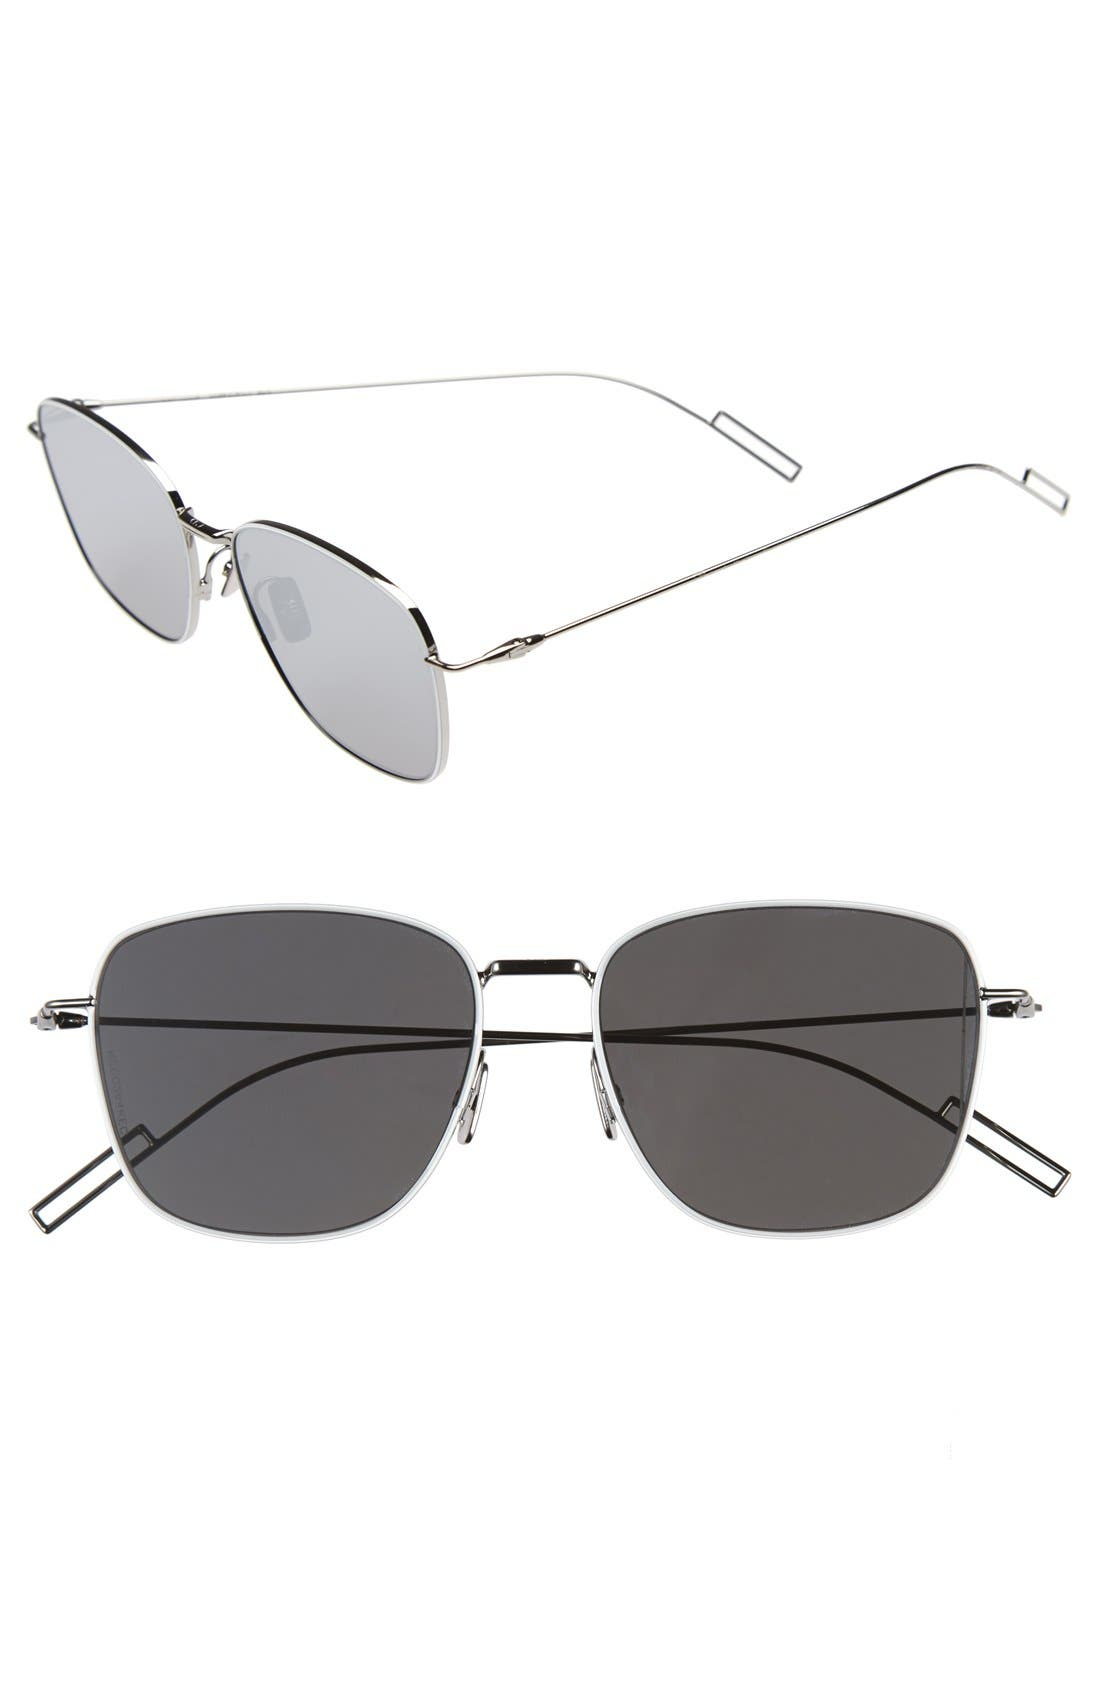 Alternate Image 1 Selected - Dior Homme 'Composit 1.1S' 54mm Metal Sunglasses